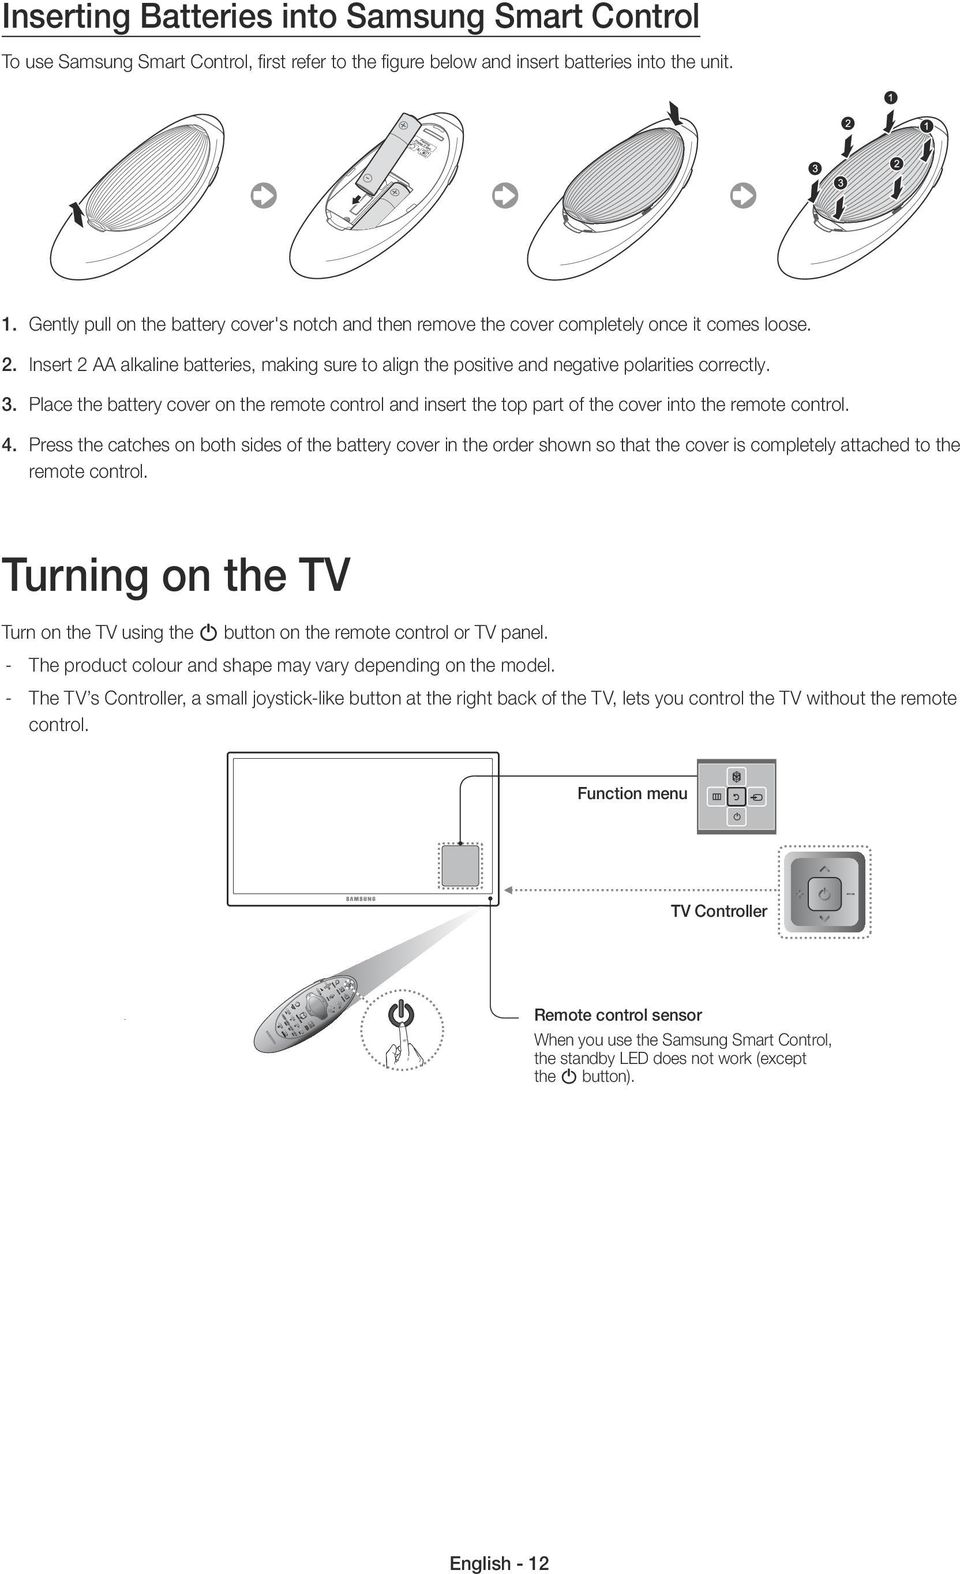 samsung smart tv instructions manual